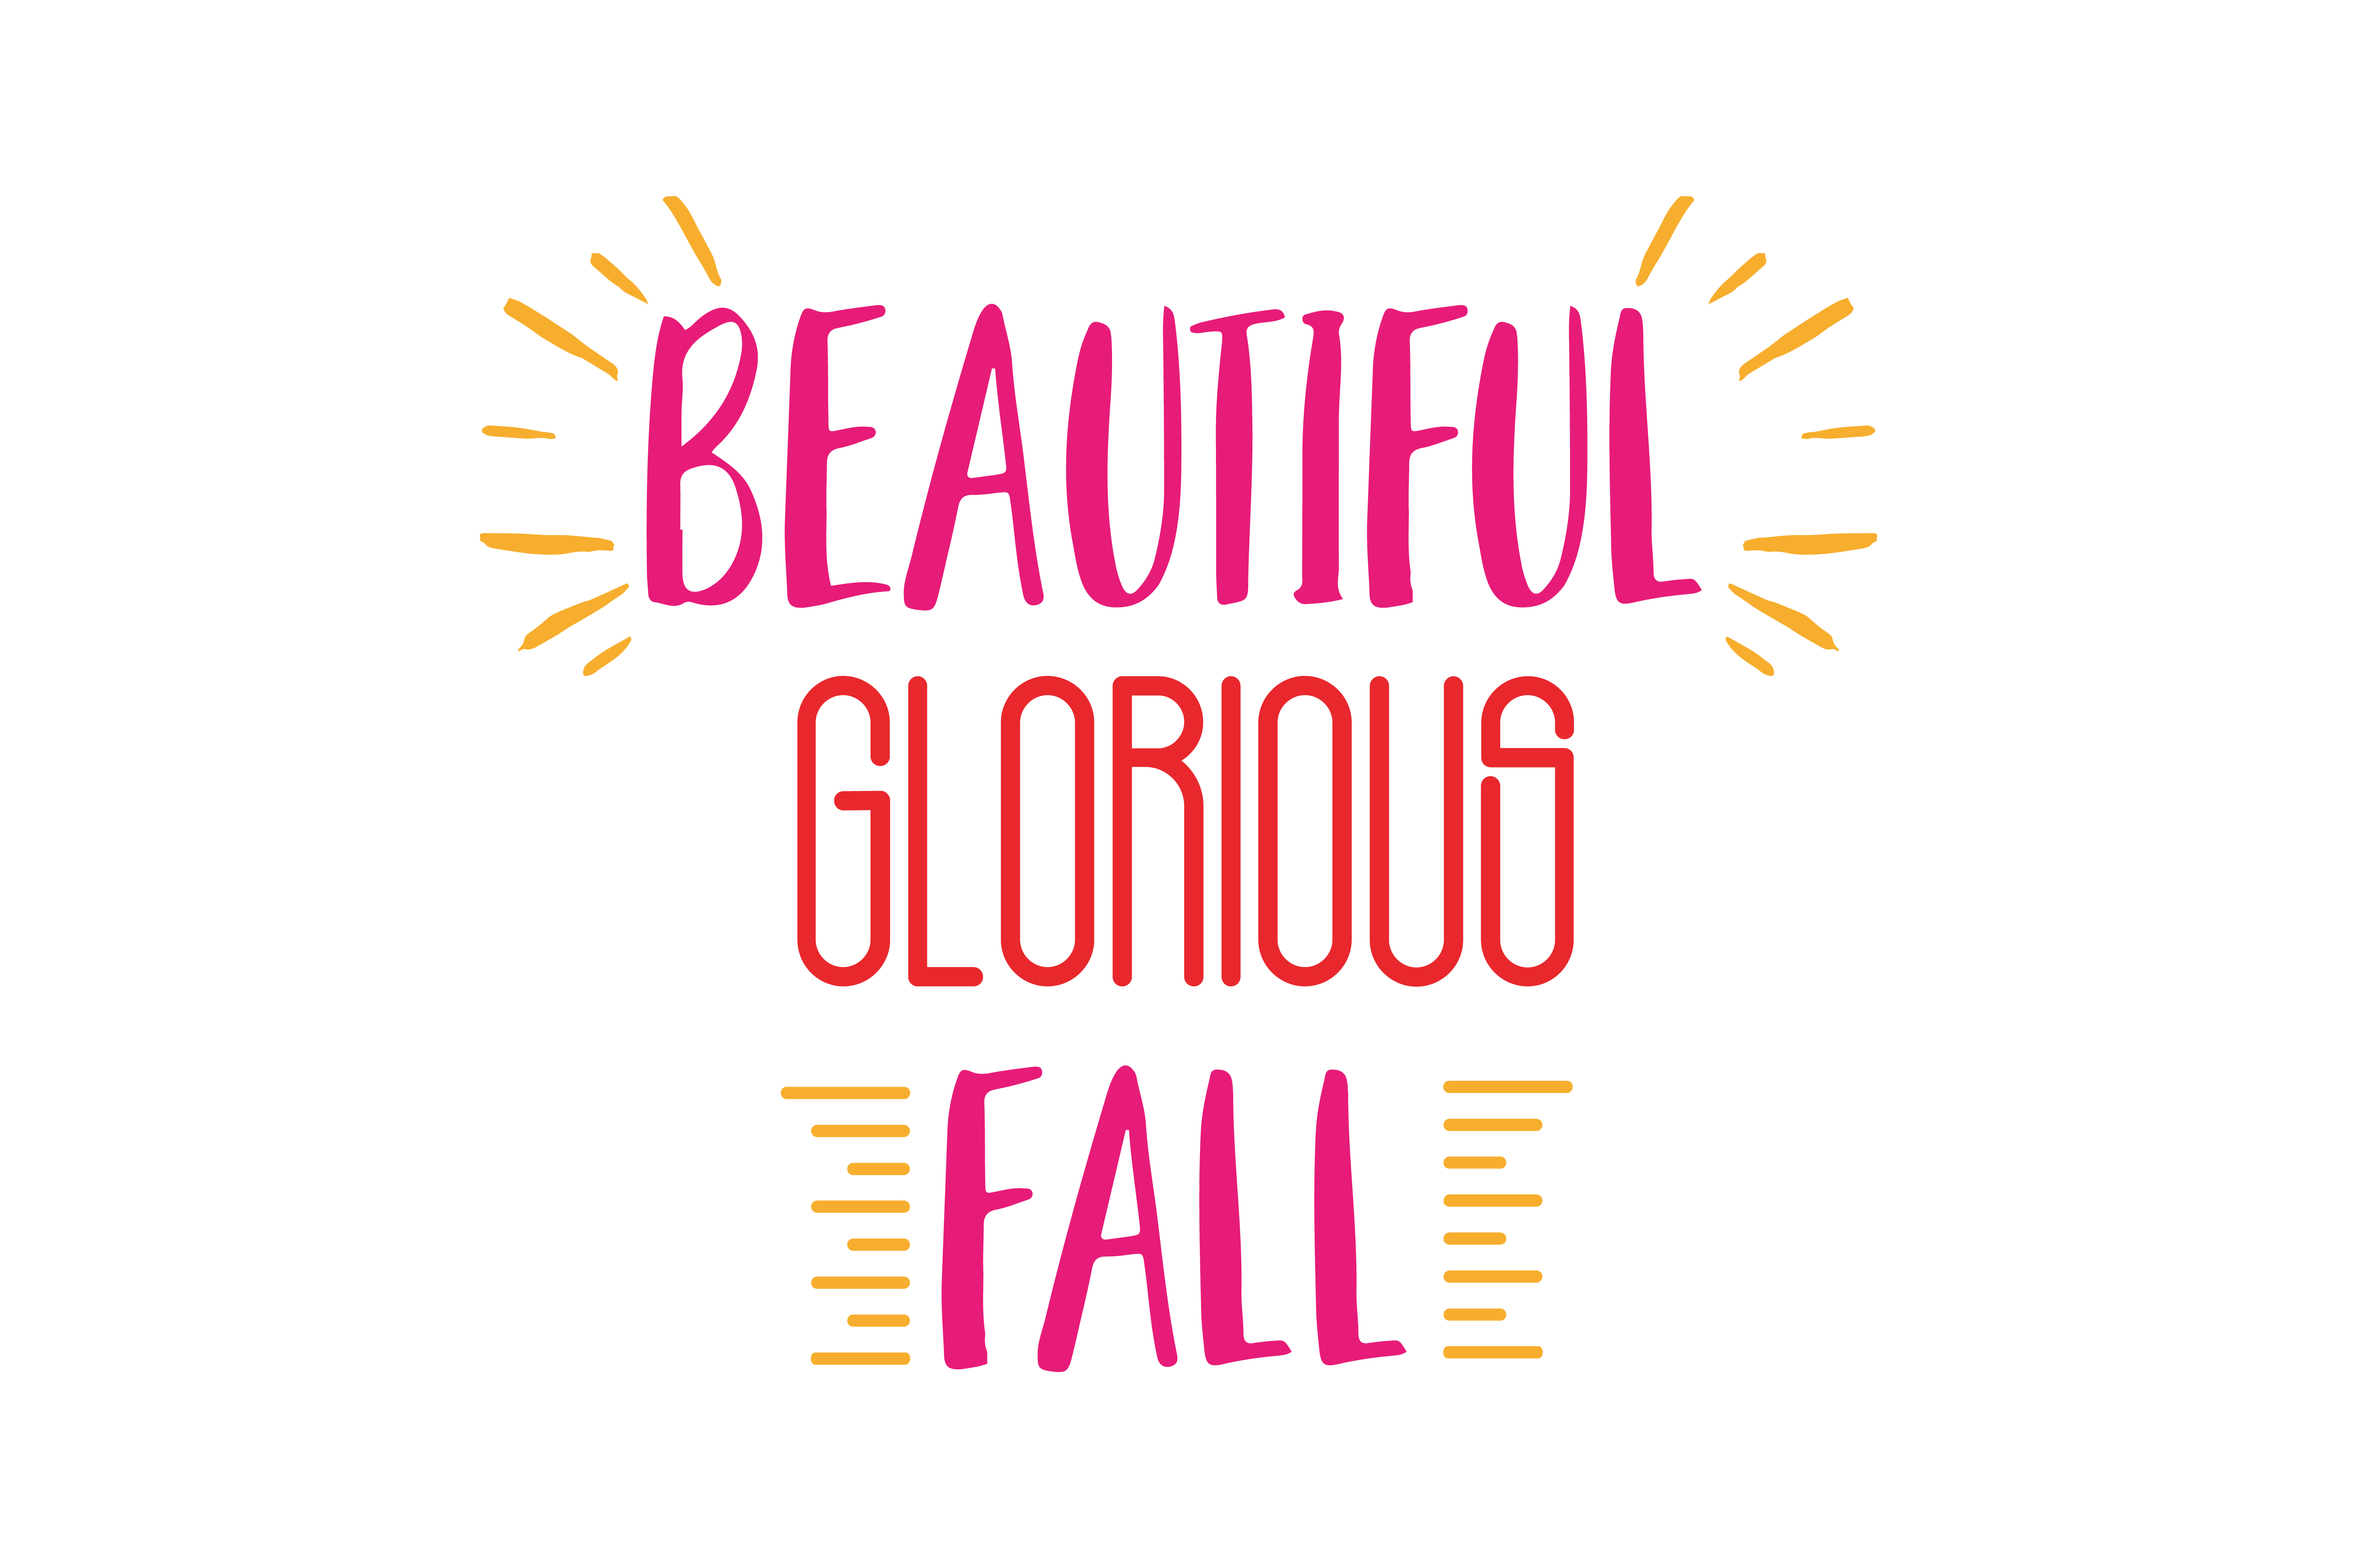 Download Free Beautiful Glorious Fall Quote Svg Cut Graphic By Thelucky for Cricut Explore, Silhouette and other cutting machines.